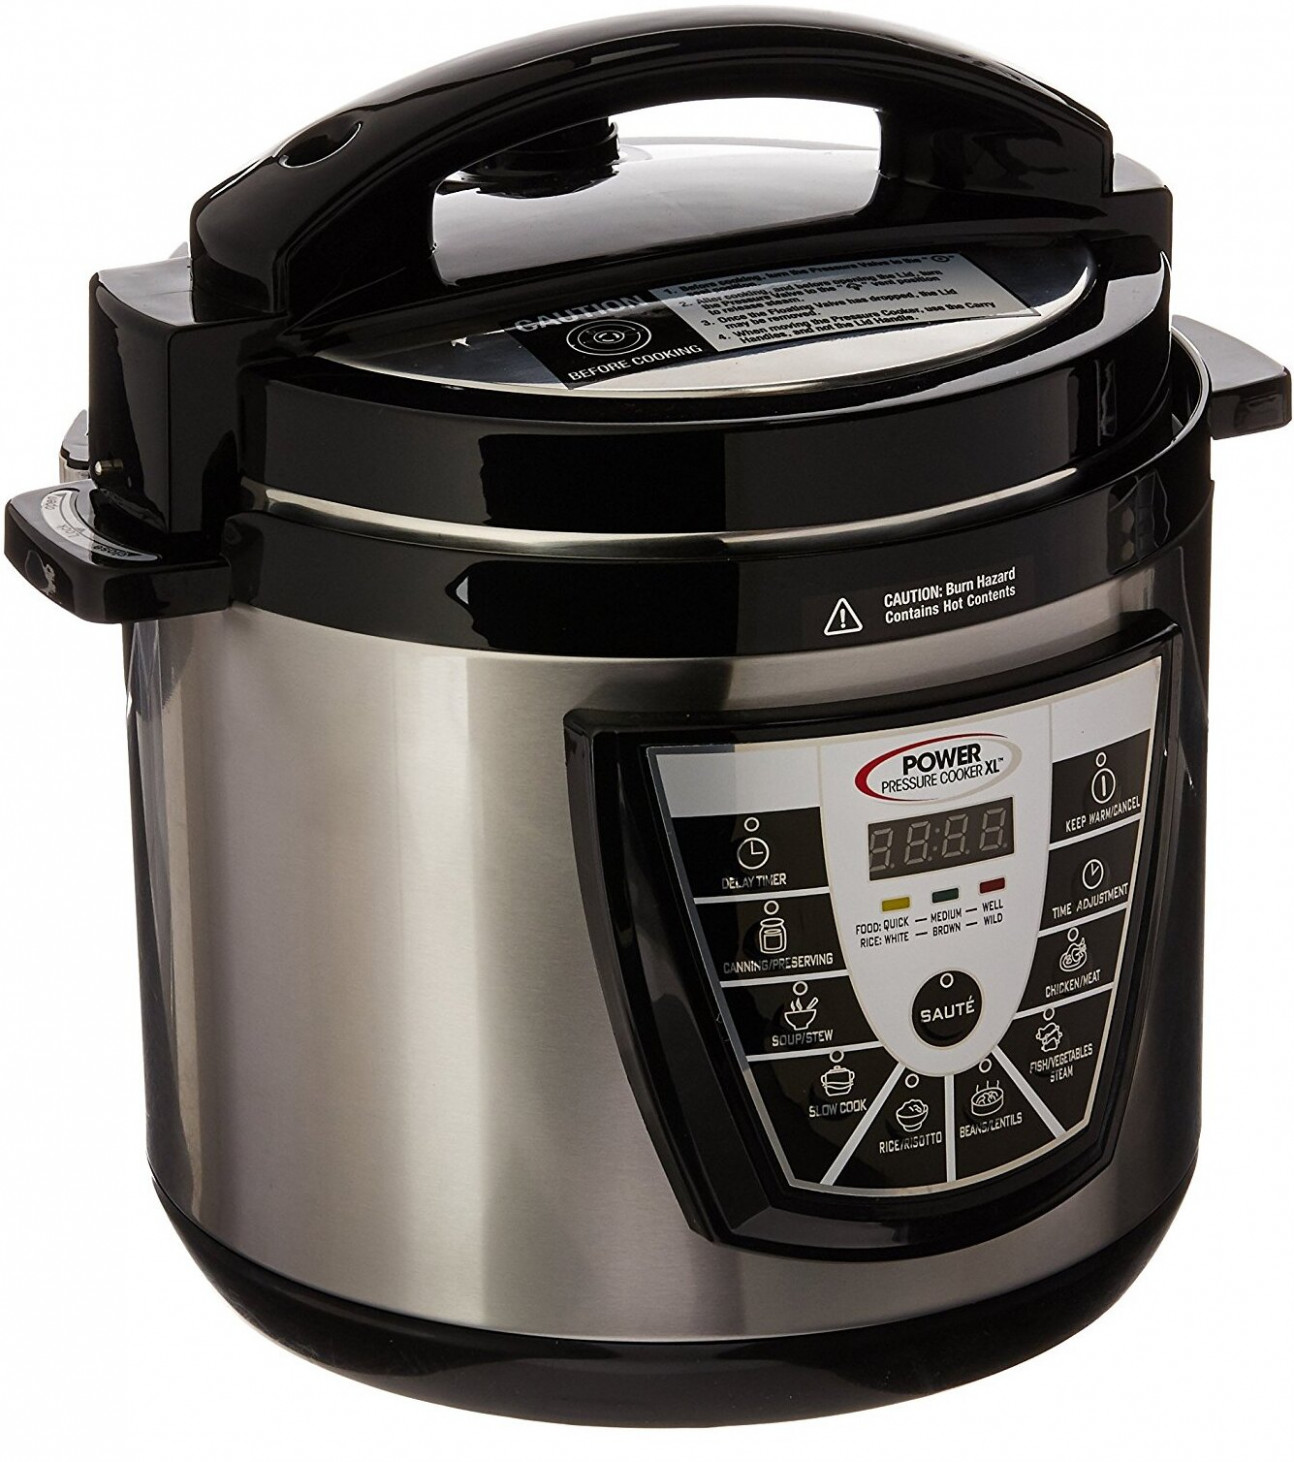 Power Pressure Cooker XL (10-Quart, Silver) with Recipes Cookbook - power cooker xl chicken recipes